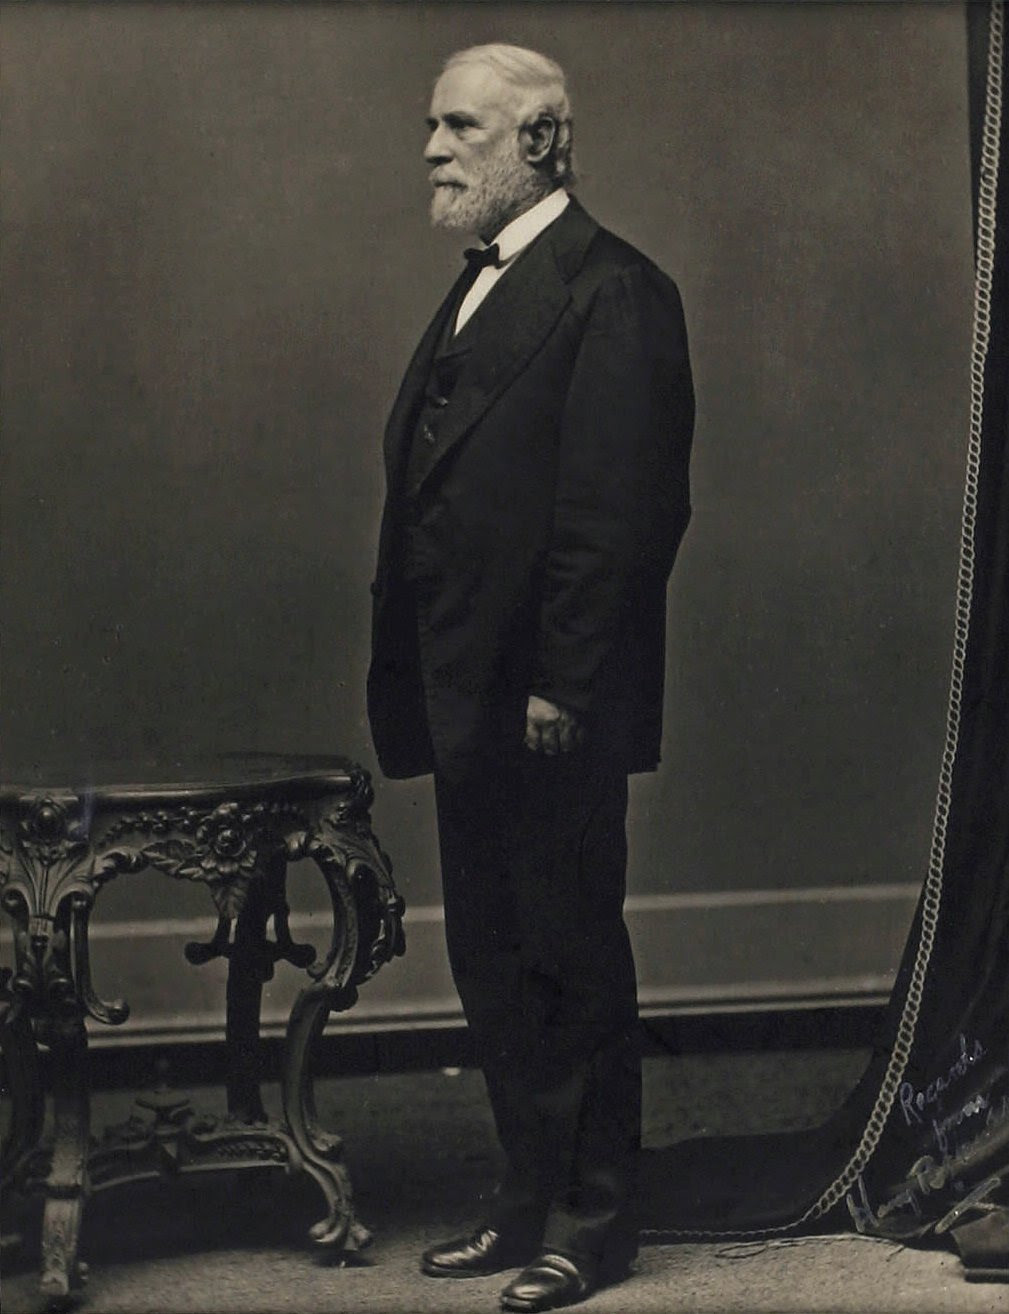 http://wandlspectator.files.wordpress.com/2014/05/robert_e_lee_standing.jpg